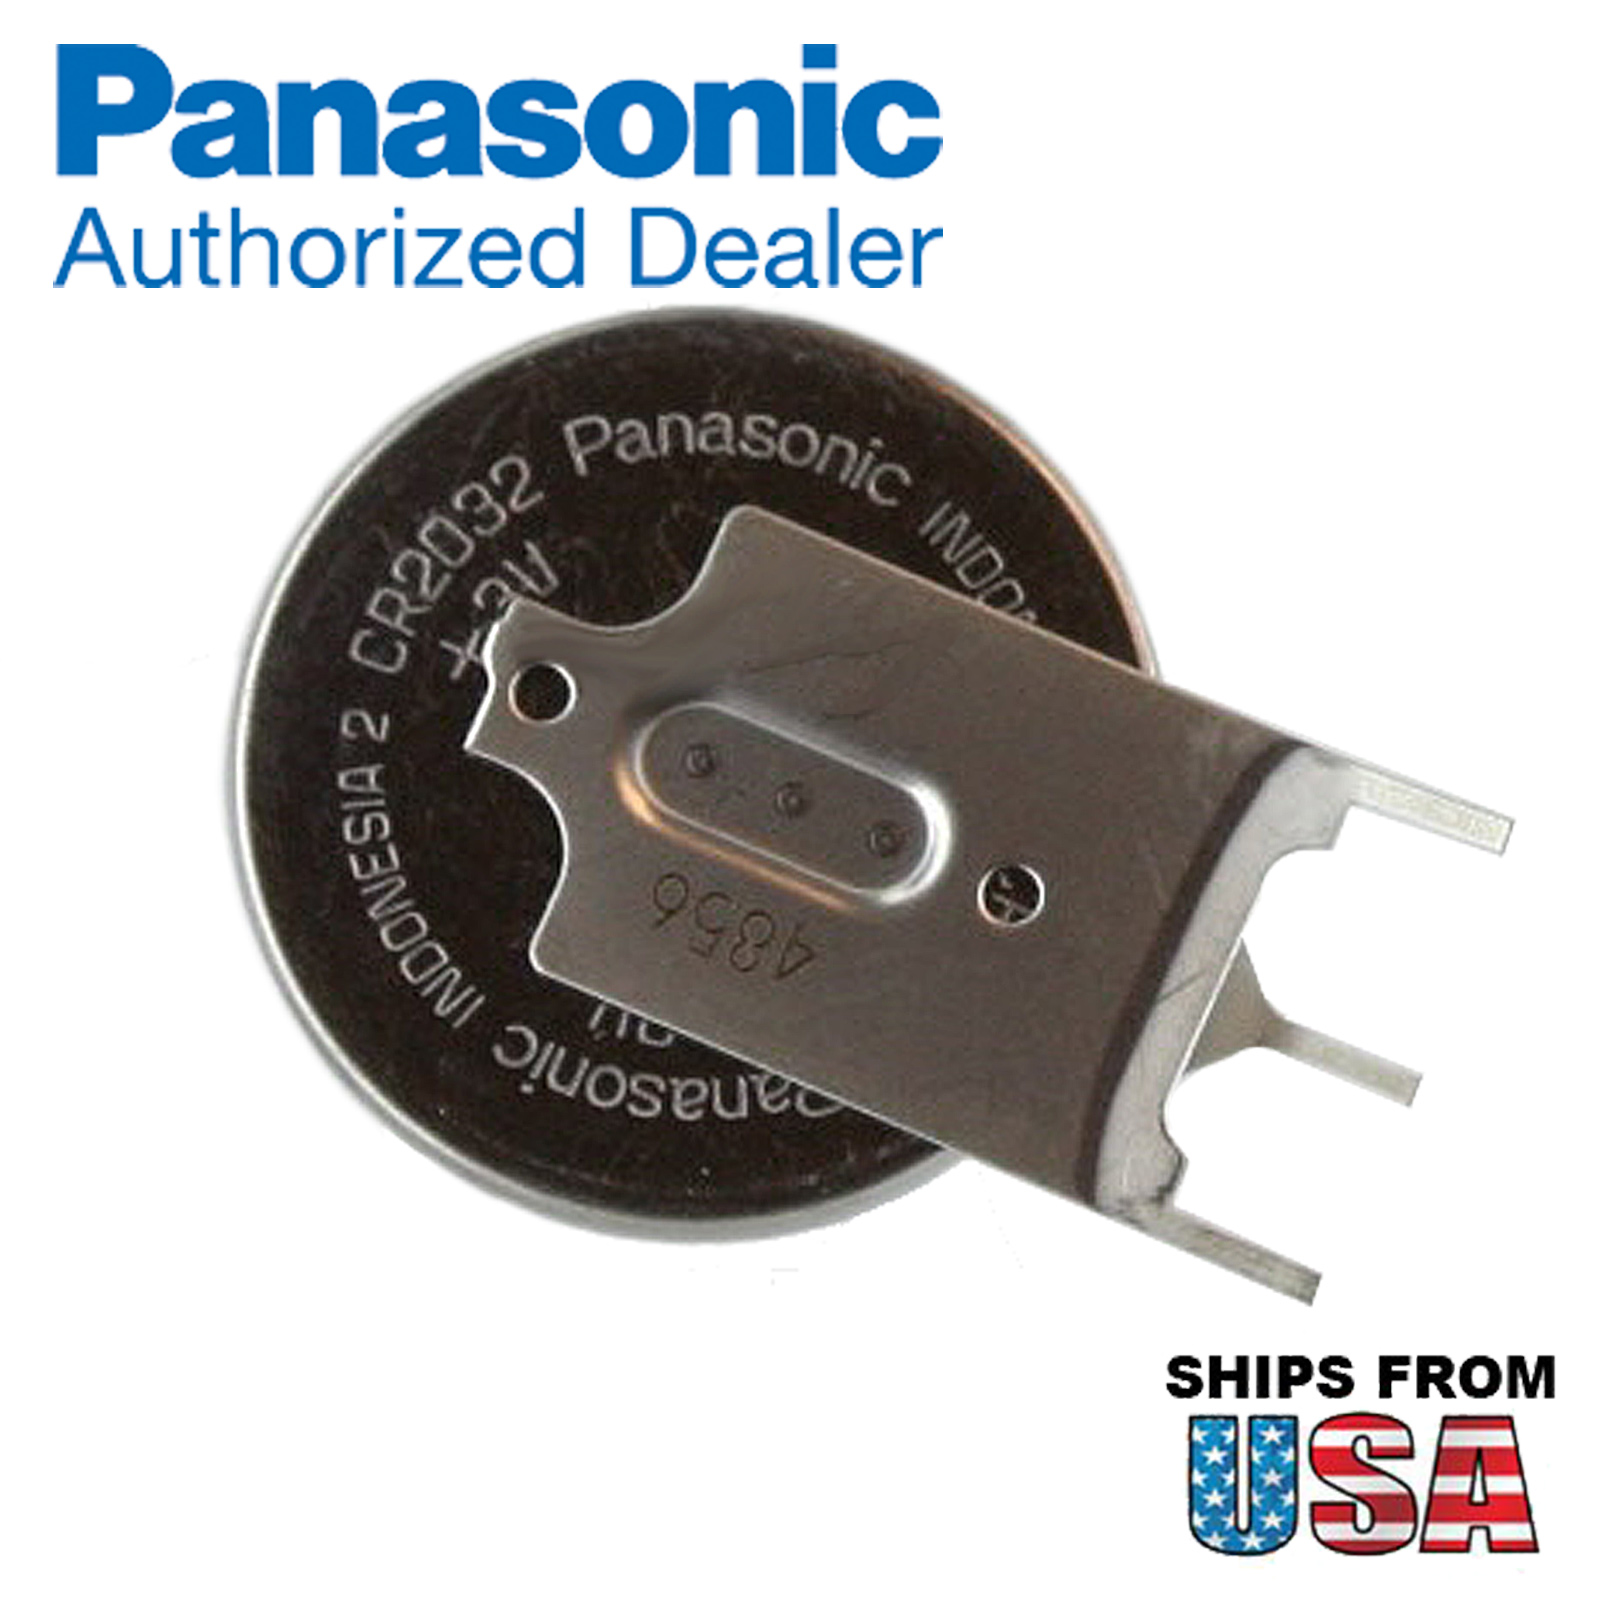 panasonic cr 2032 gvn 3v lithium coin battery horz 3 pins tab for pc boards ebay. Black Bedroom Furniture Sets. Home Design Ideas